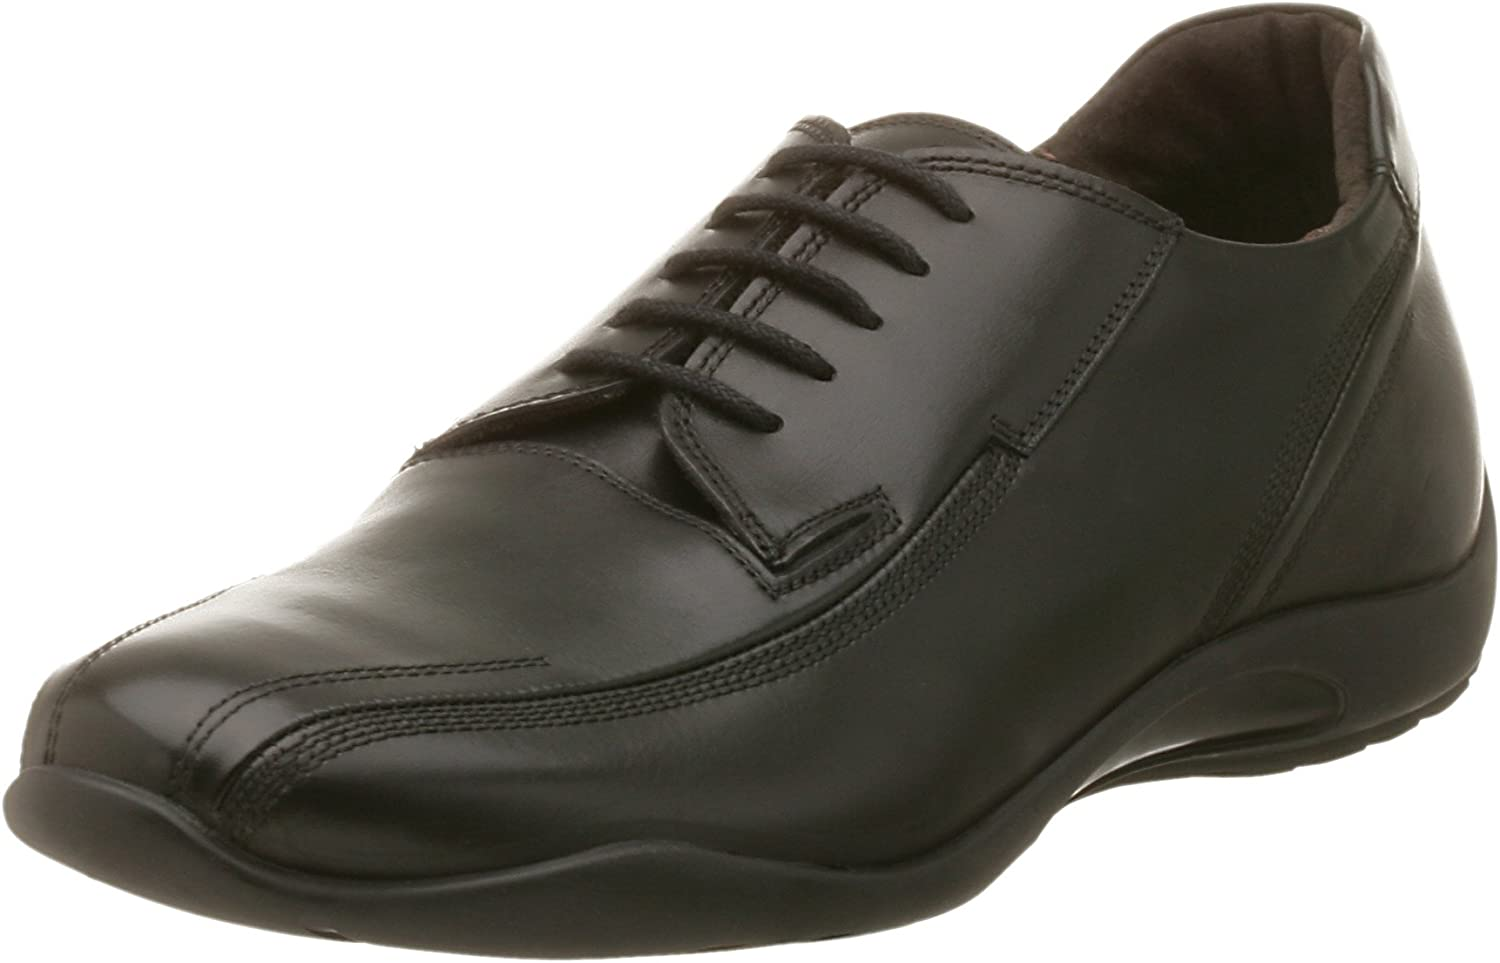 Bacco Bucci Men's Lace-up Babak Kansas City Mall Selling and selling